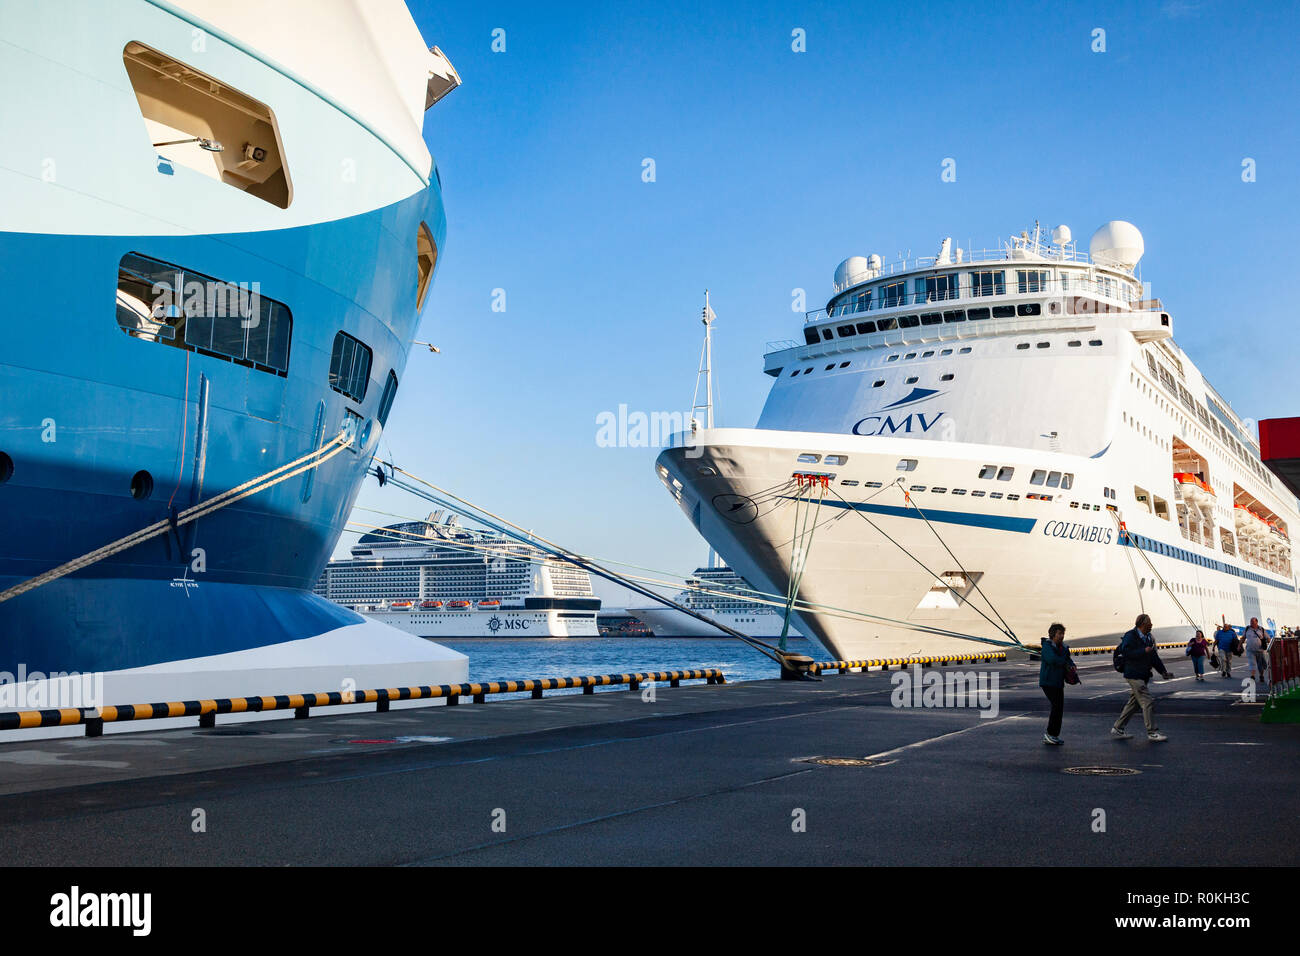 September 19 2018: St Petersburg, Russia - Cruise ships moored at Marine Facade, the passenger terminal for St Petersburg. - Stock Image